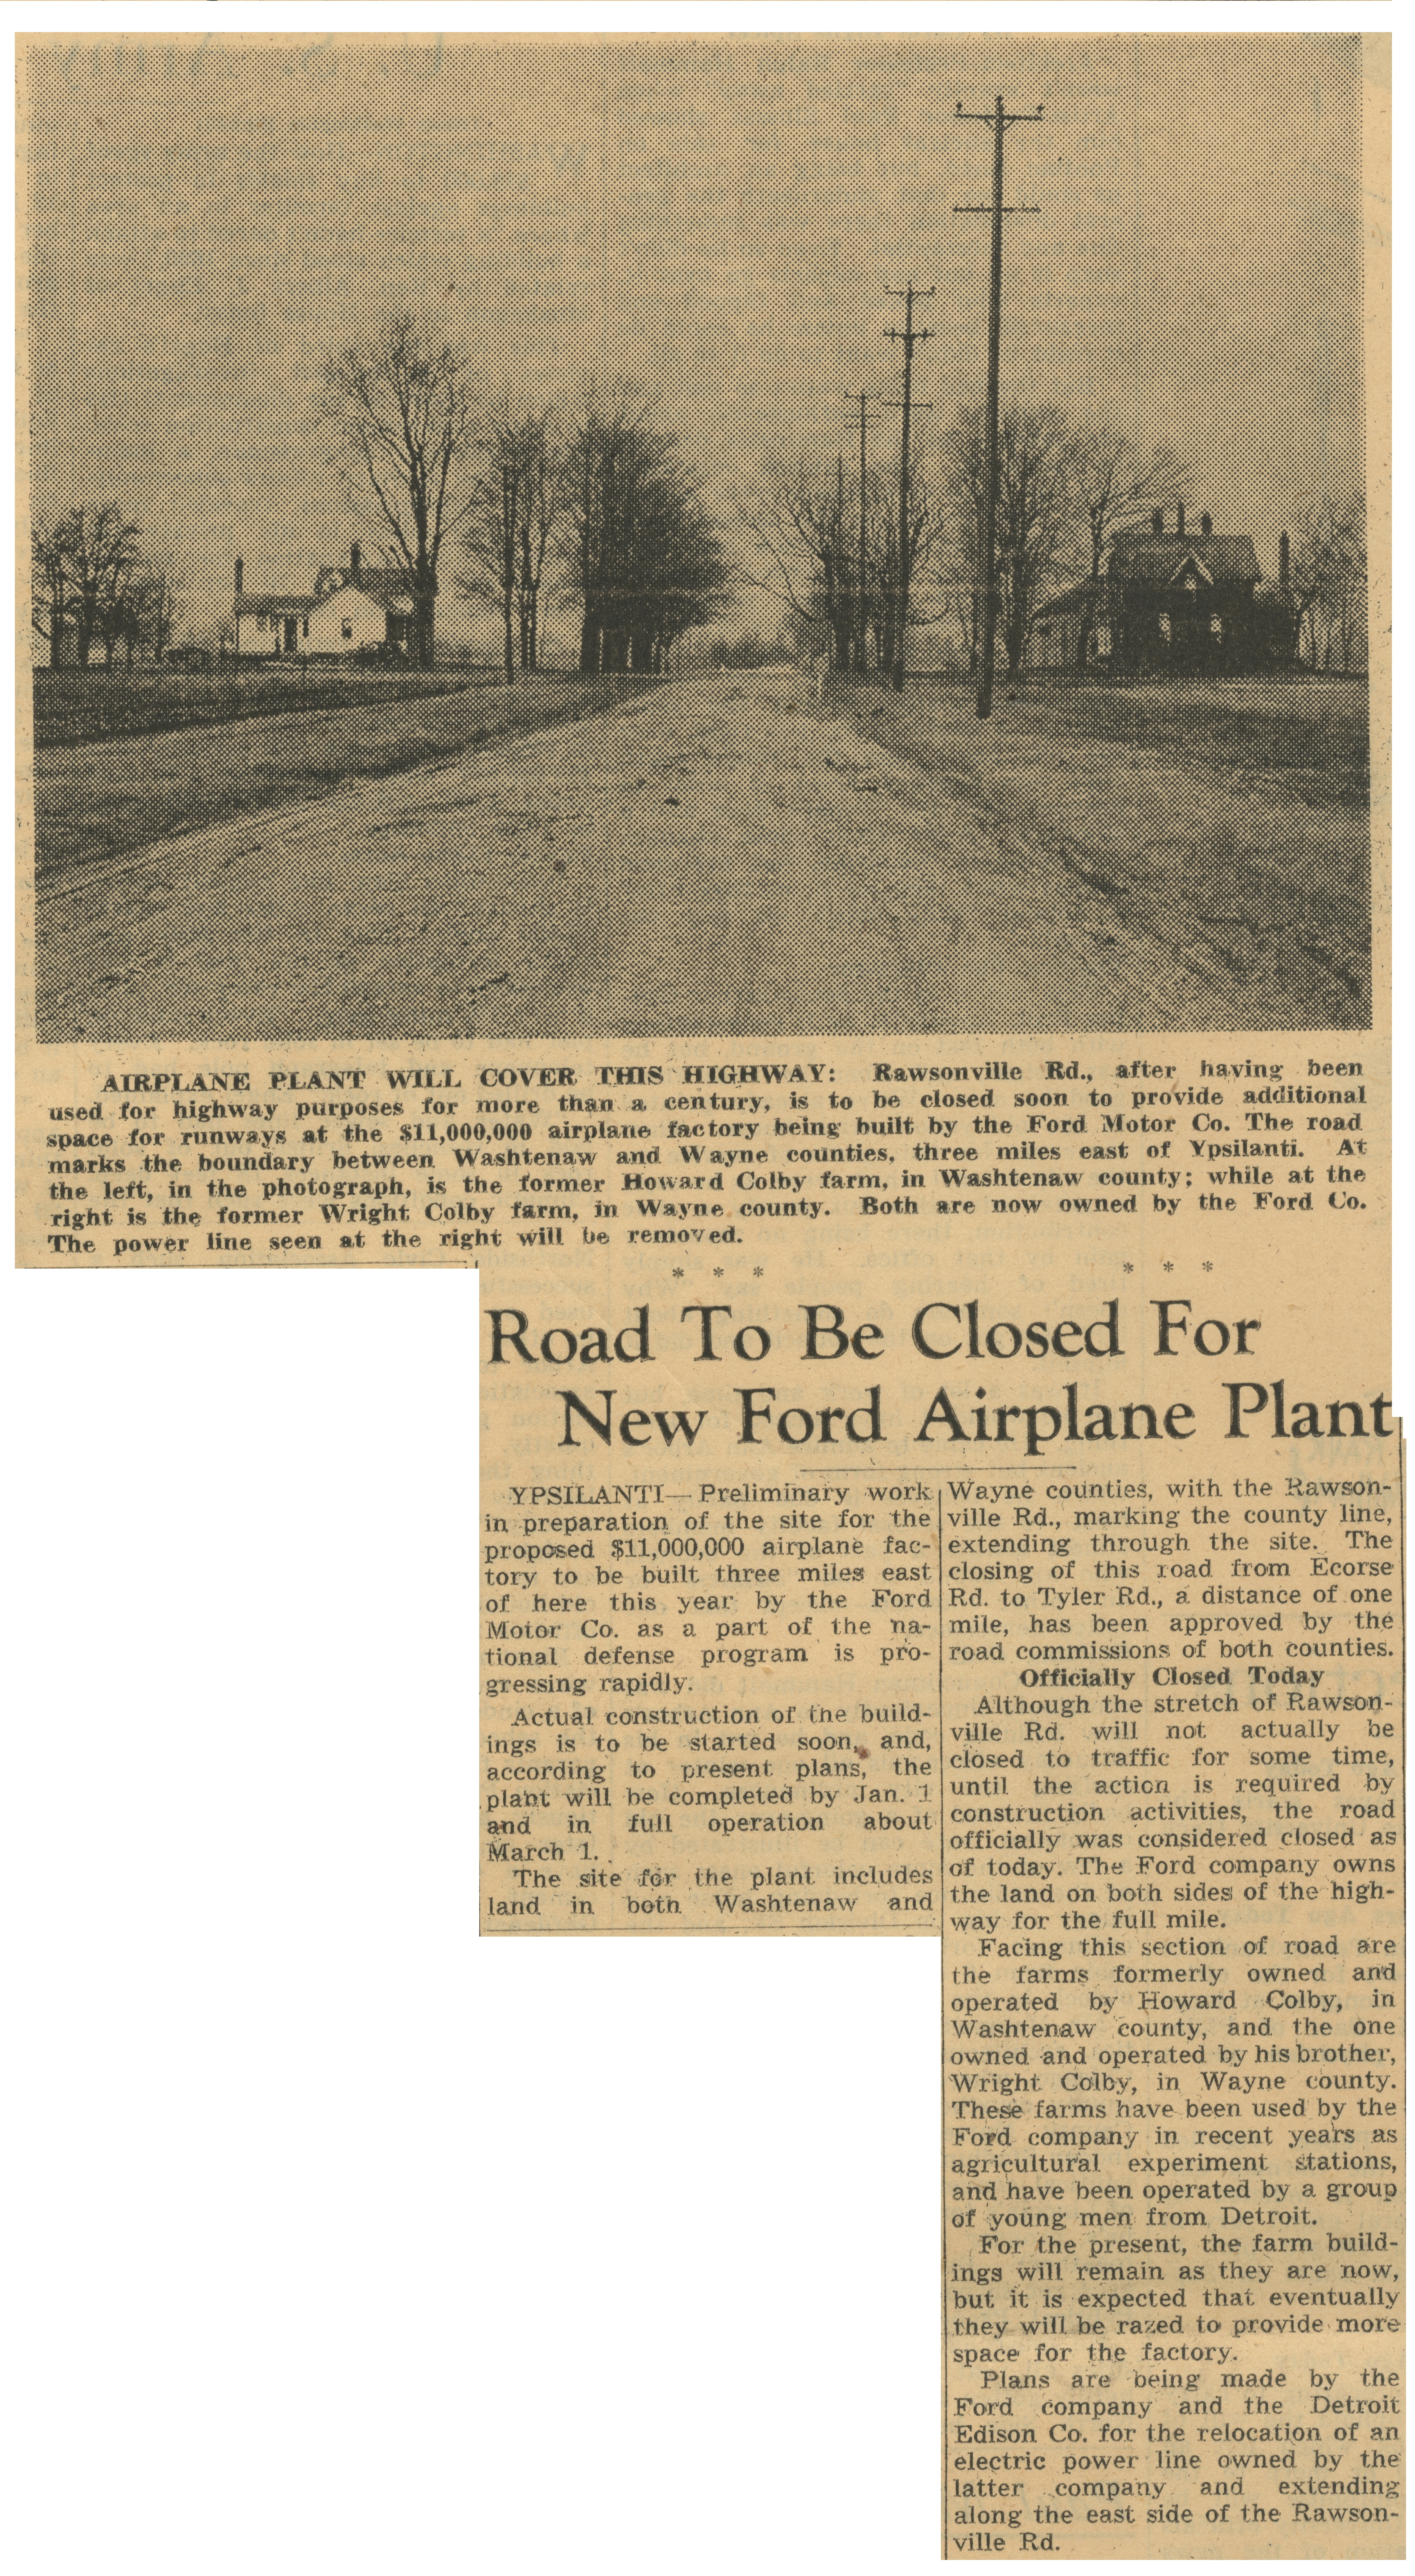 Road To Be Closed For New Ford Airplane Plant image